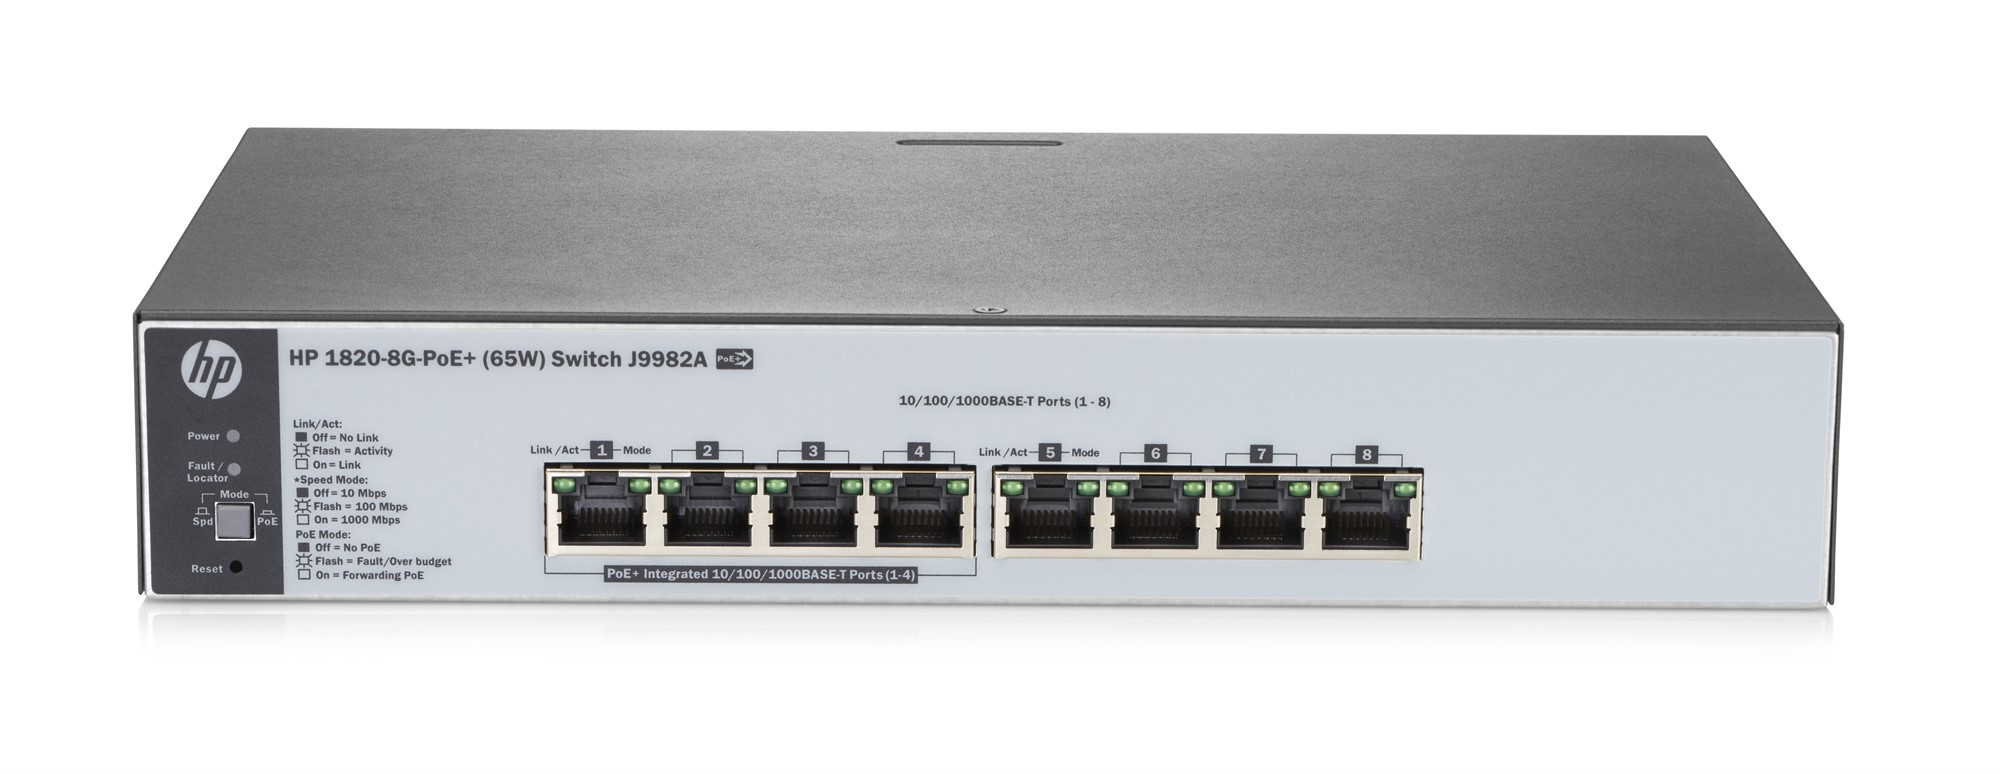 HPE J9982A 1820-8G-POE+ (65W) MANAGED NETWORK SWITCH